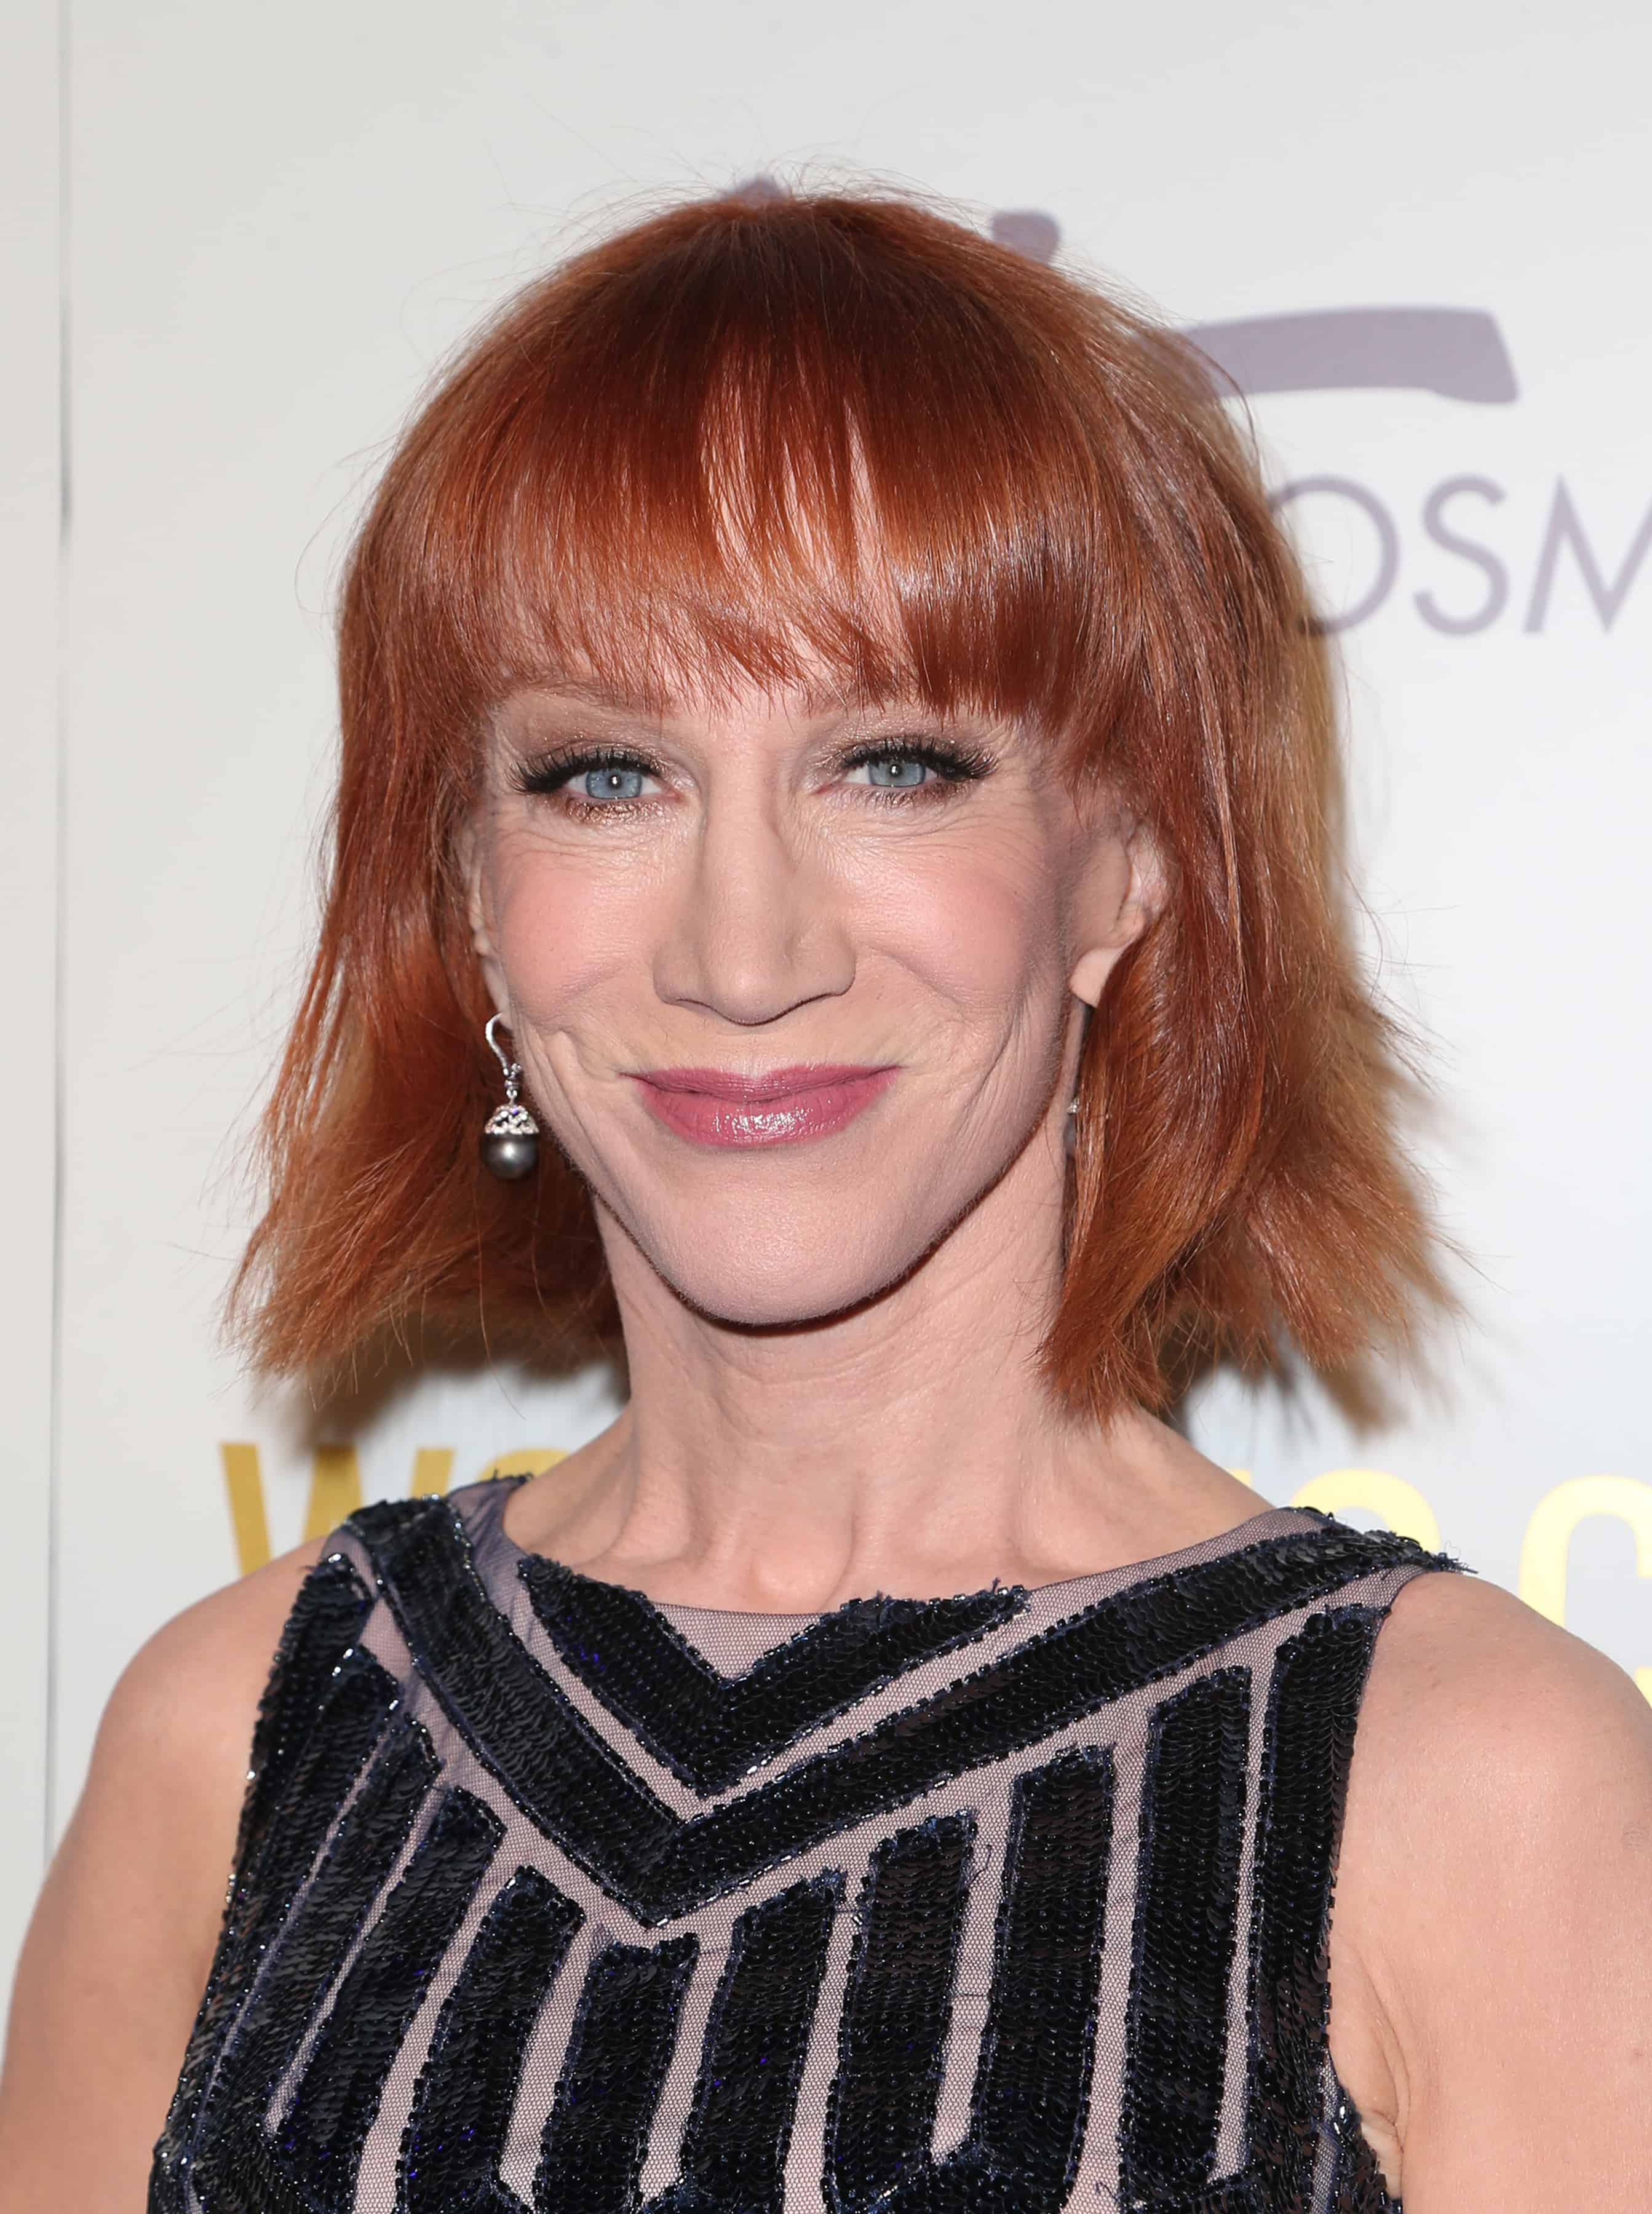 Will Kathy Griffin fac...